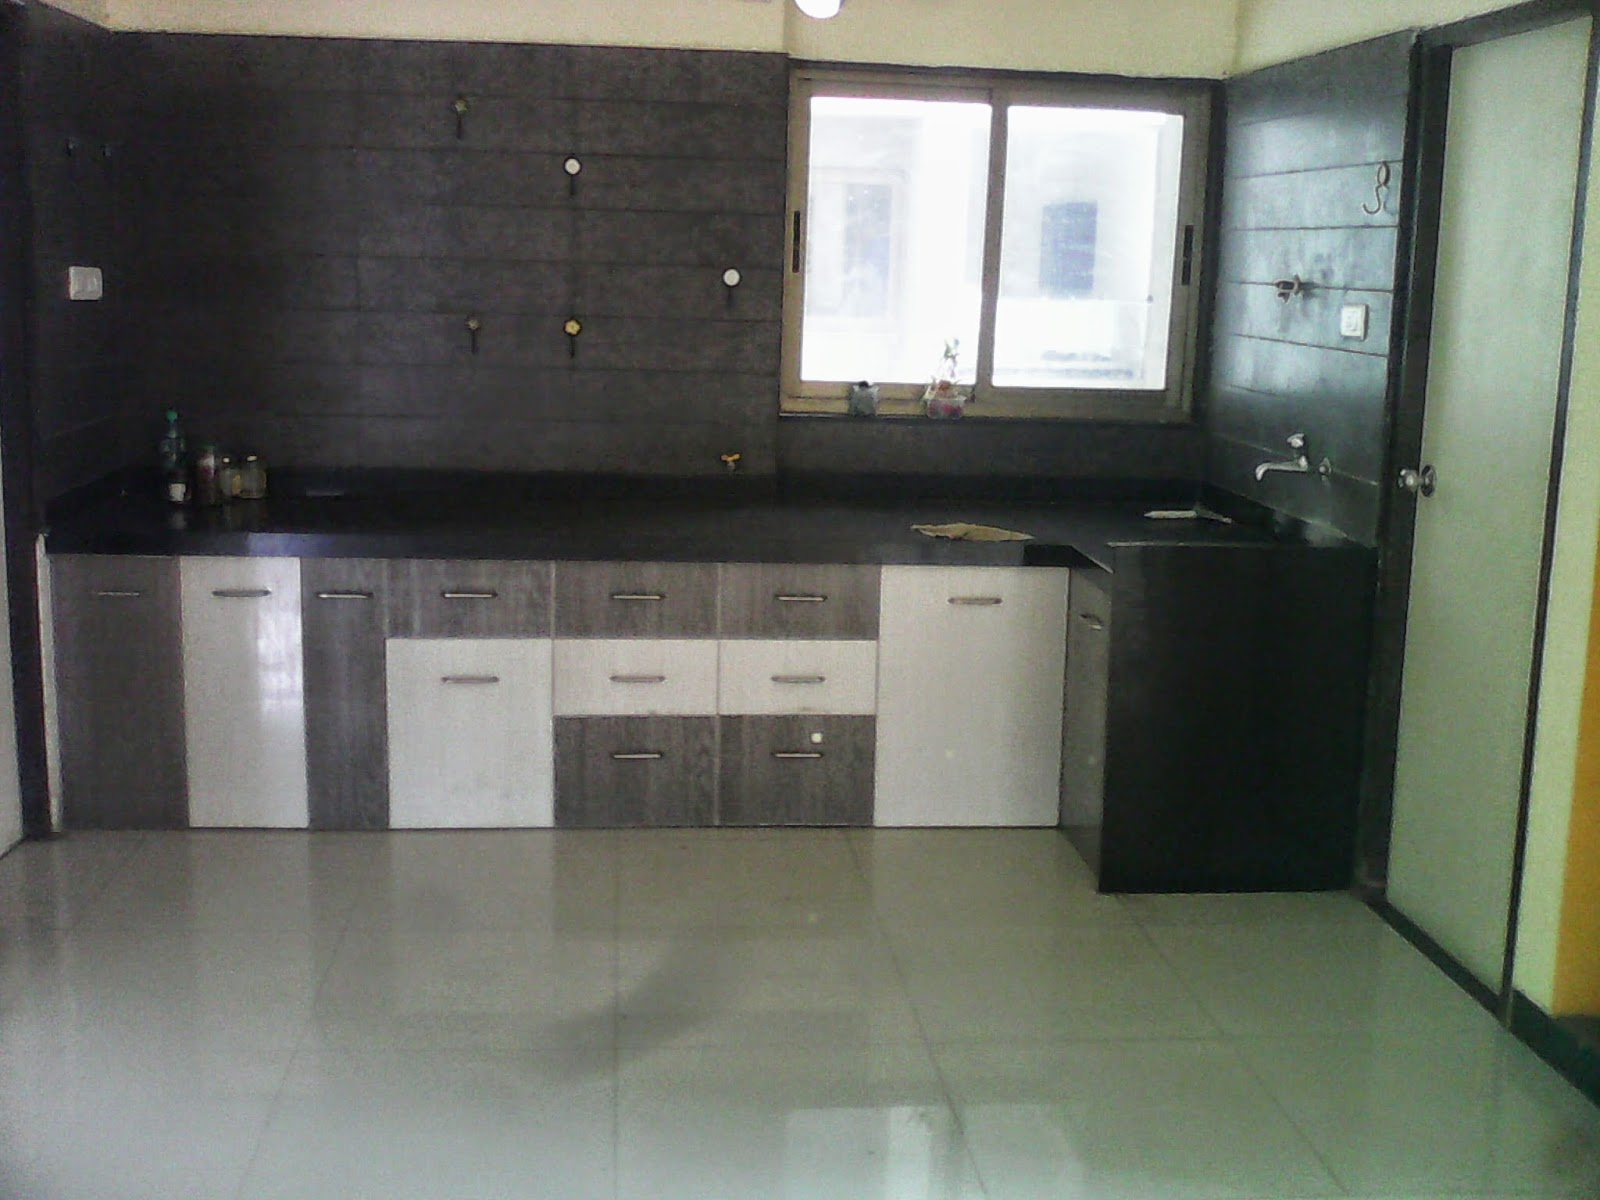 Kitchen King Ahmedabad Rent Buy Sale Property Ahmedabad 3 Bhk Flat Available On